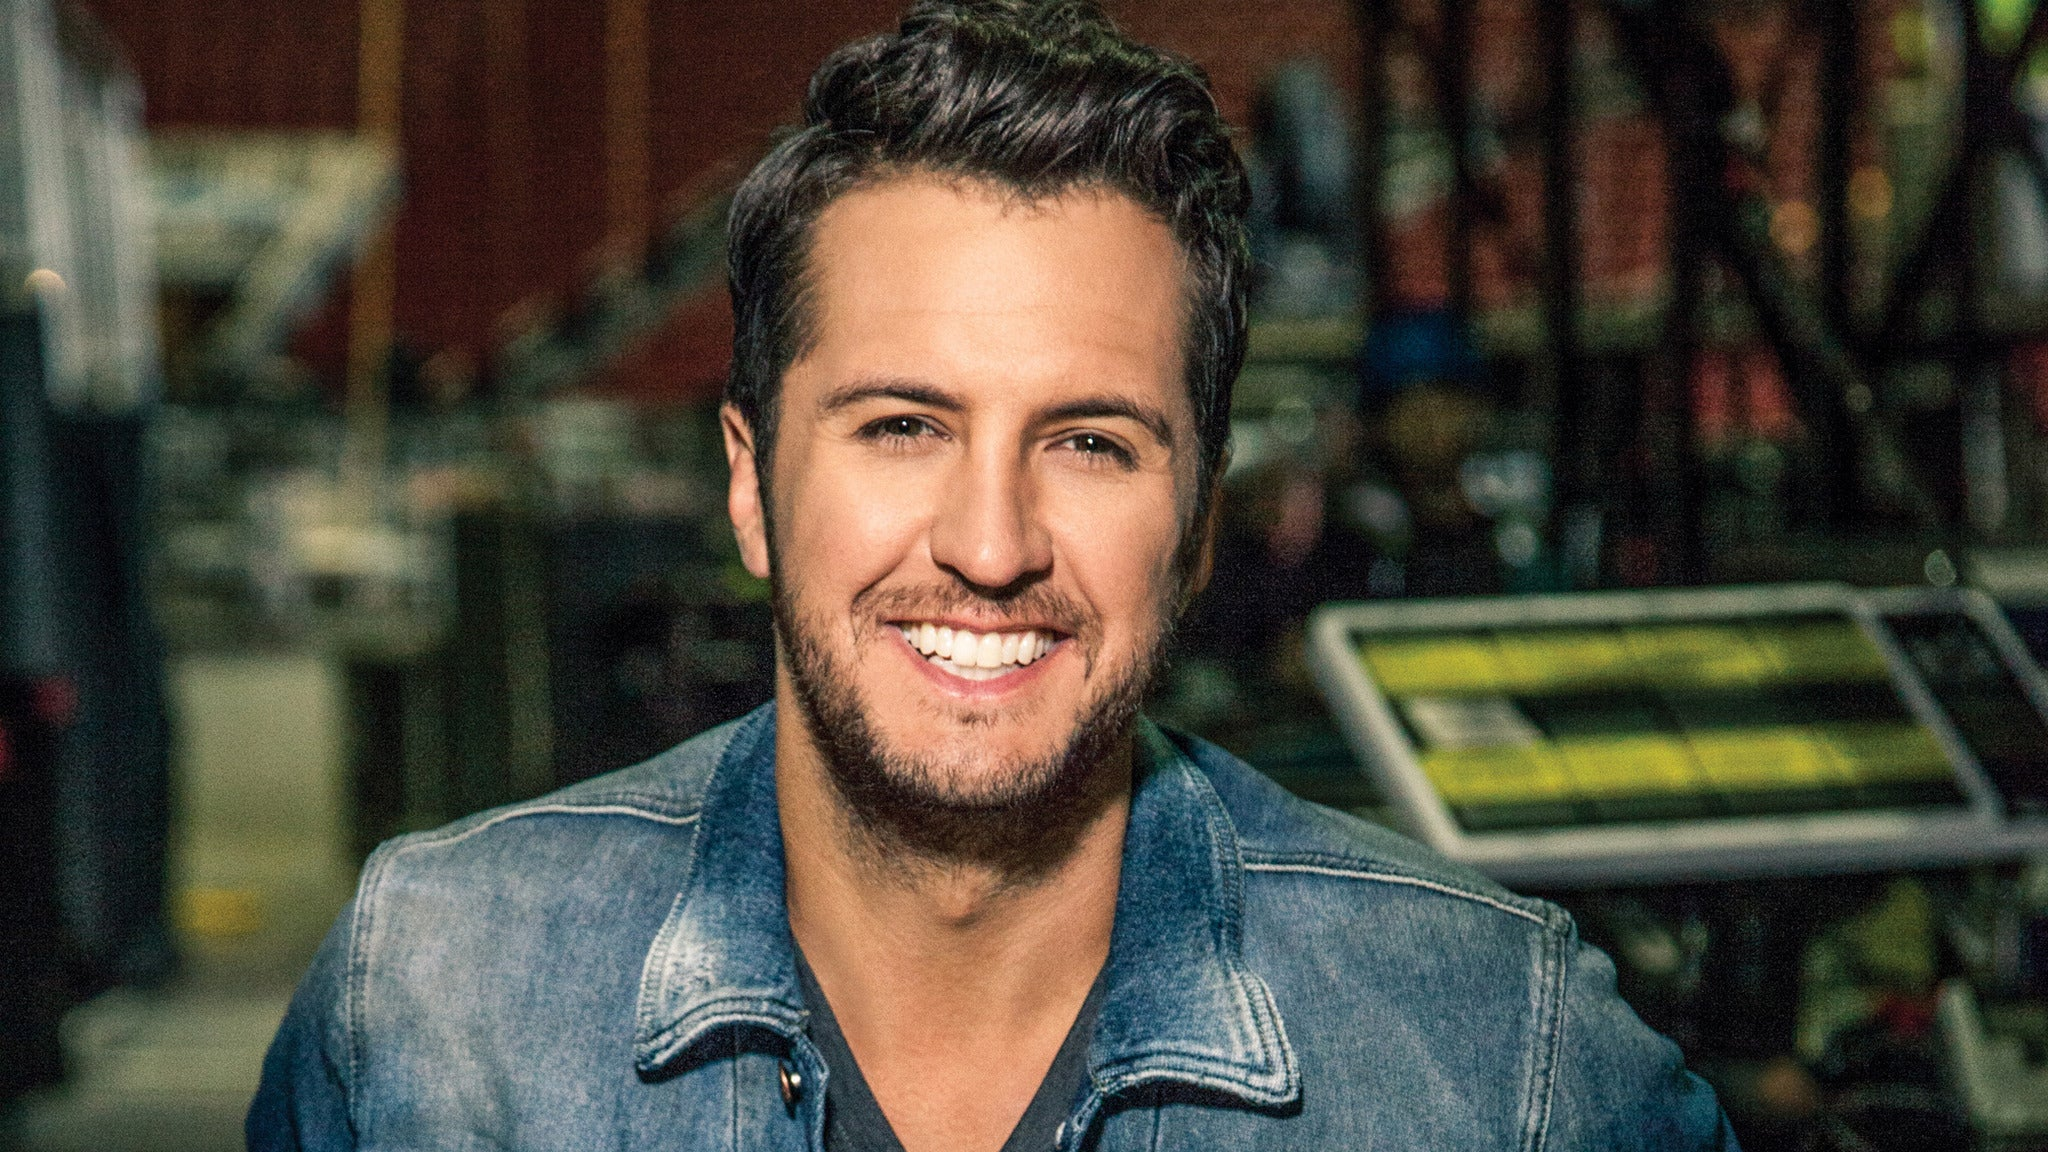 Luke Bryan at Wilson Center ??? NC